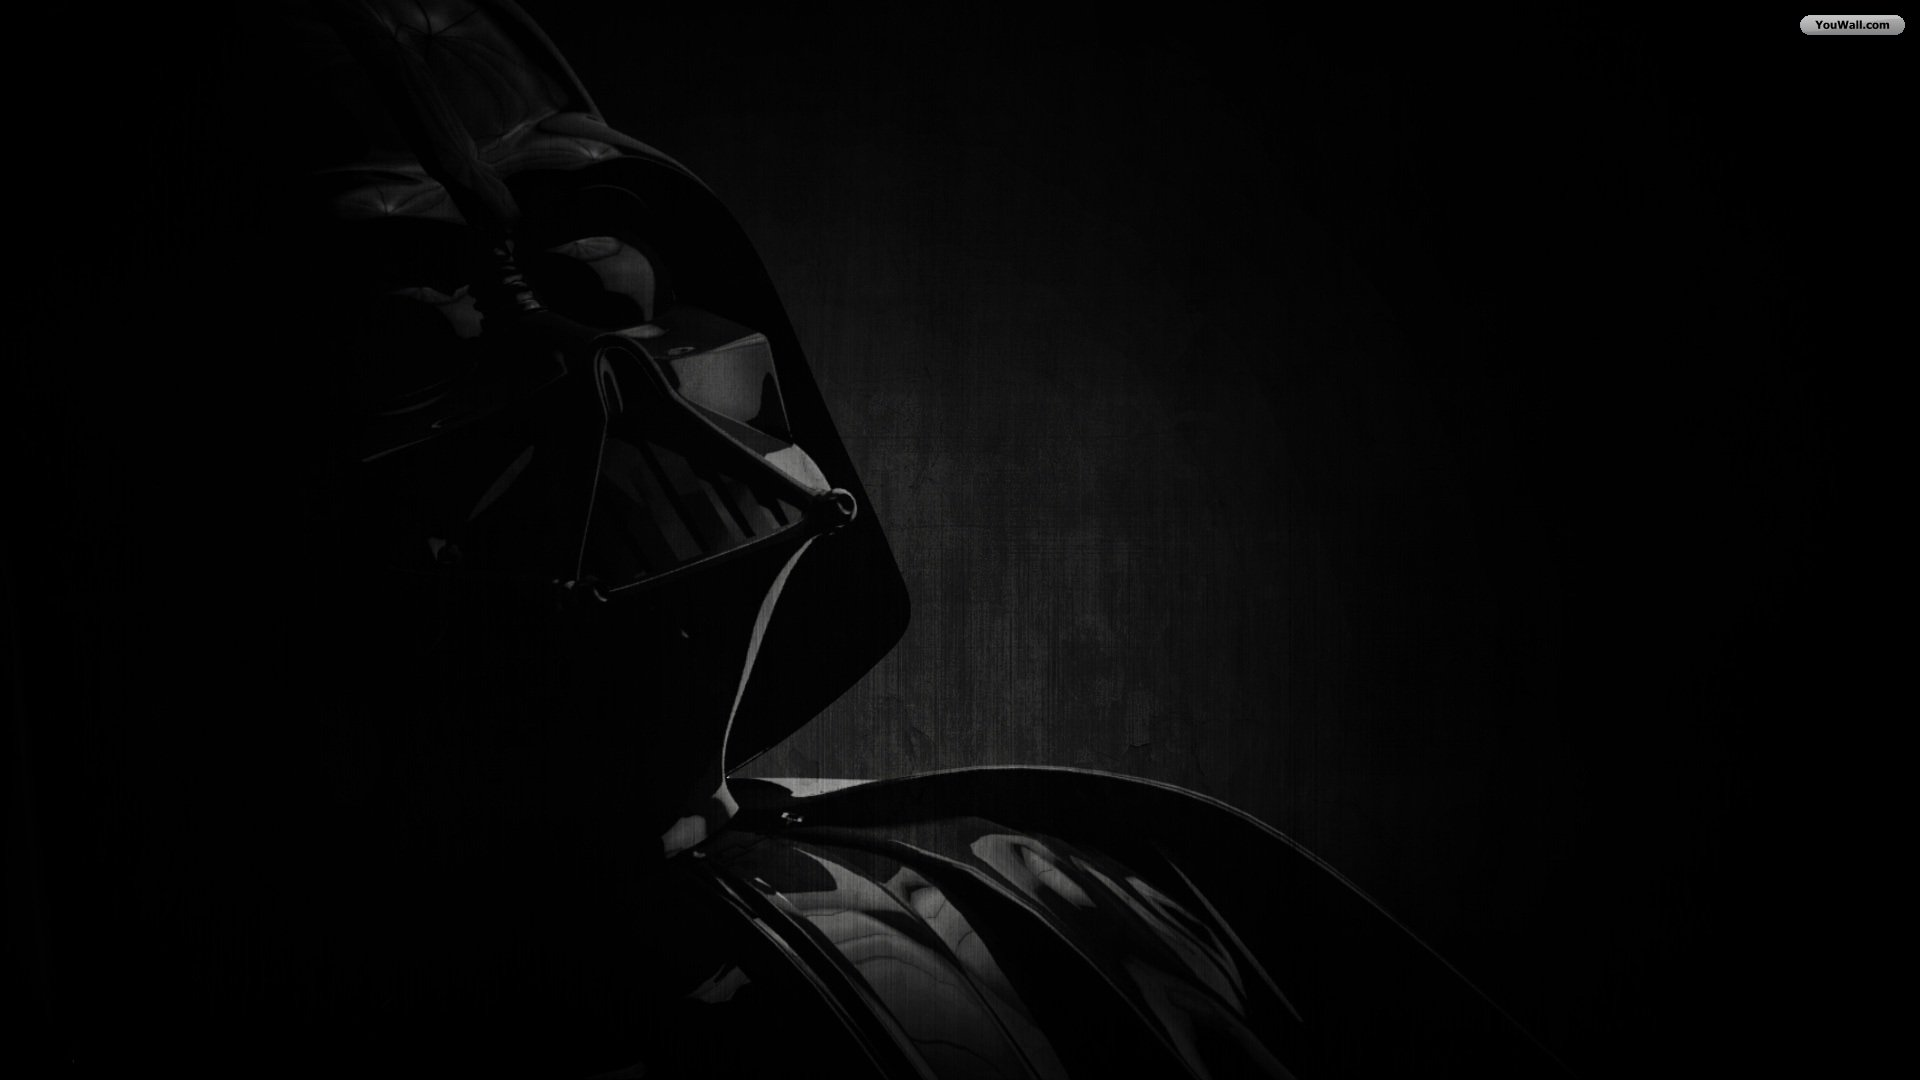 Darth Vader Full HD Wallpaper and Background 1920x1080 ID568752